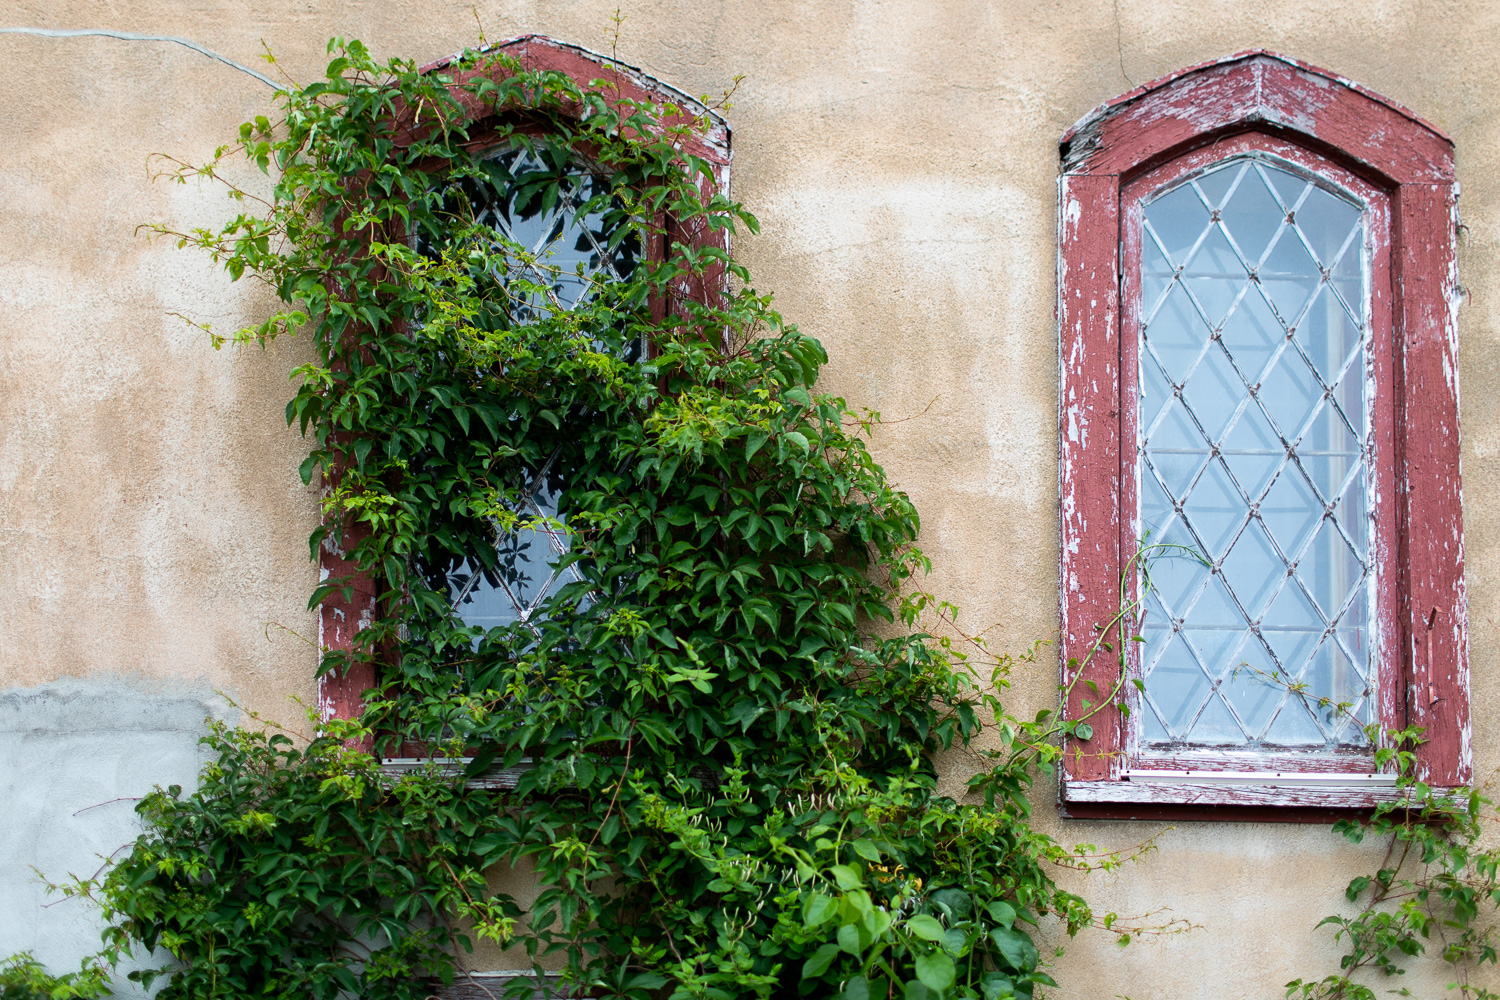 Ivy covering a window at the Hammond Castle.